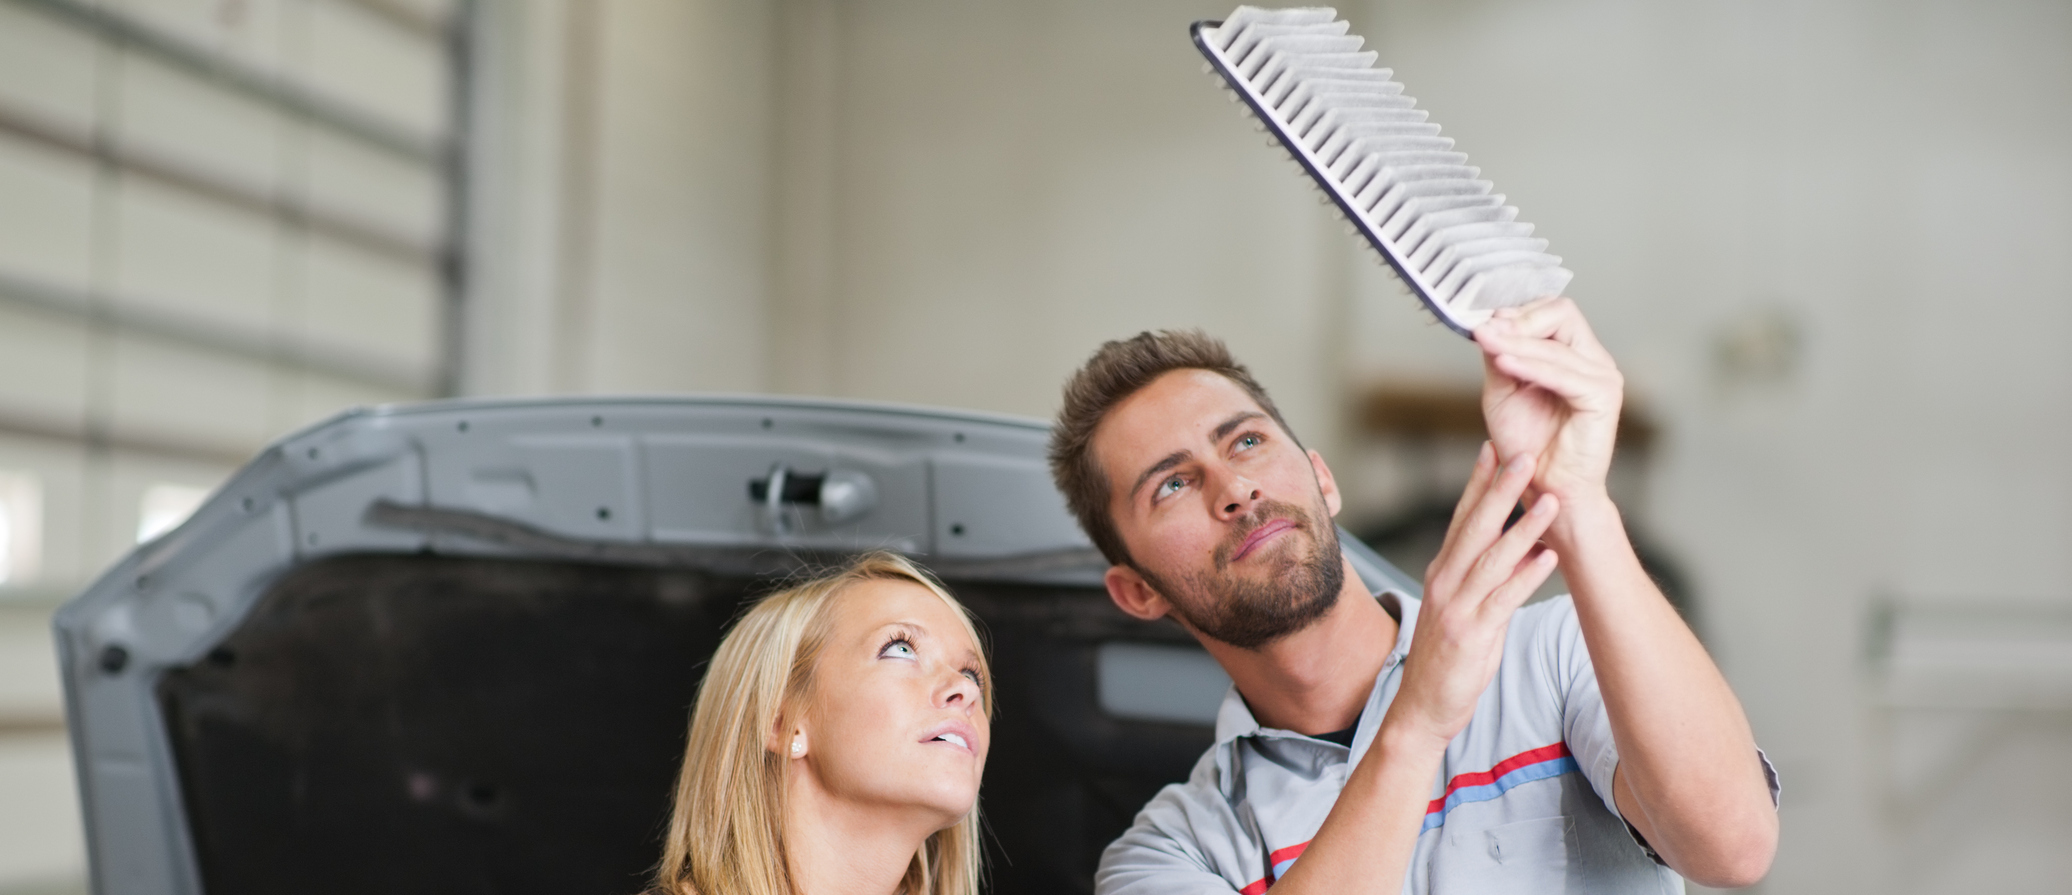 Cabin Air Filter Replacement Service near Deerfield, IL